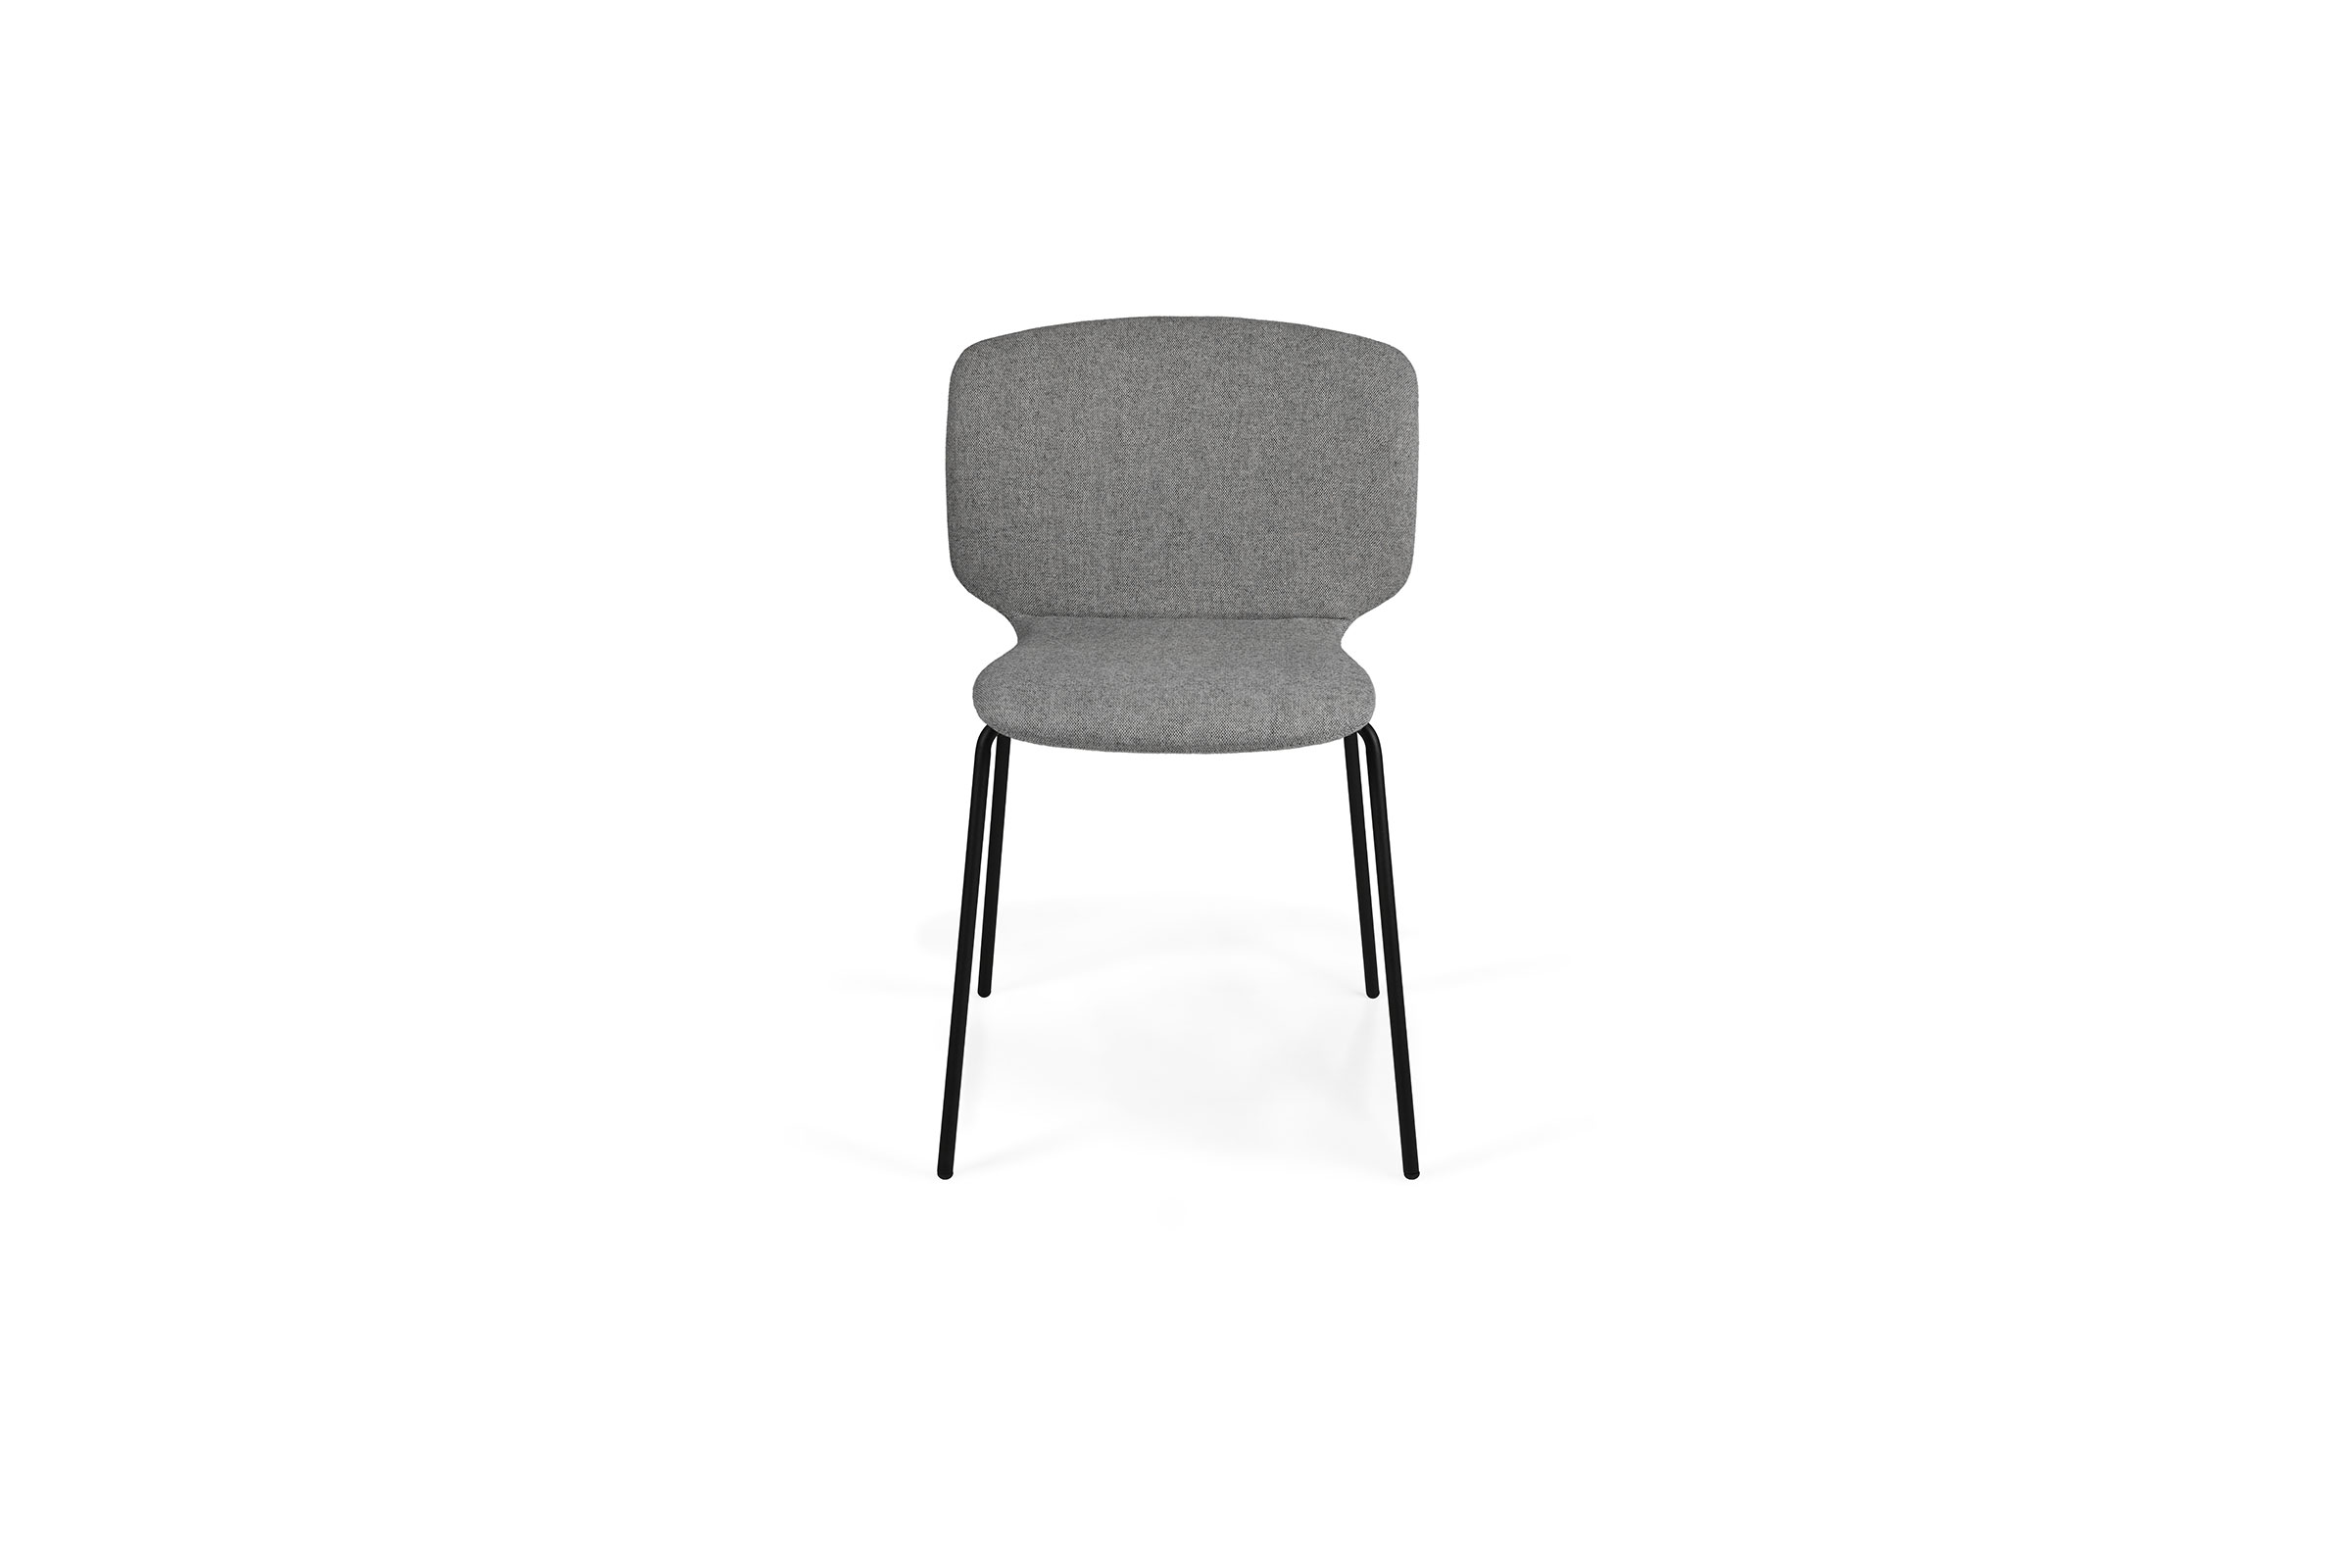 RADAR Chair - Steel Base - Upholstered